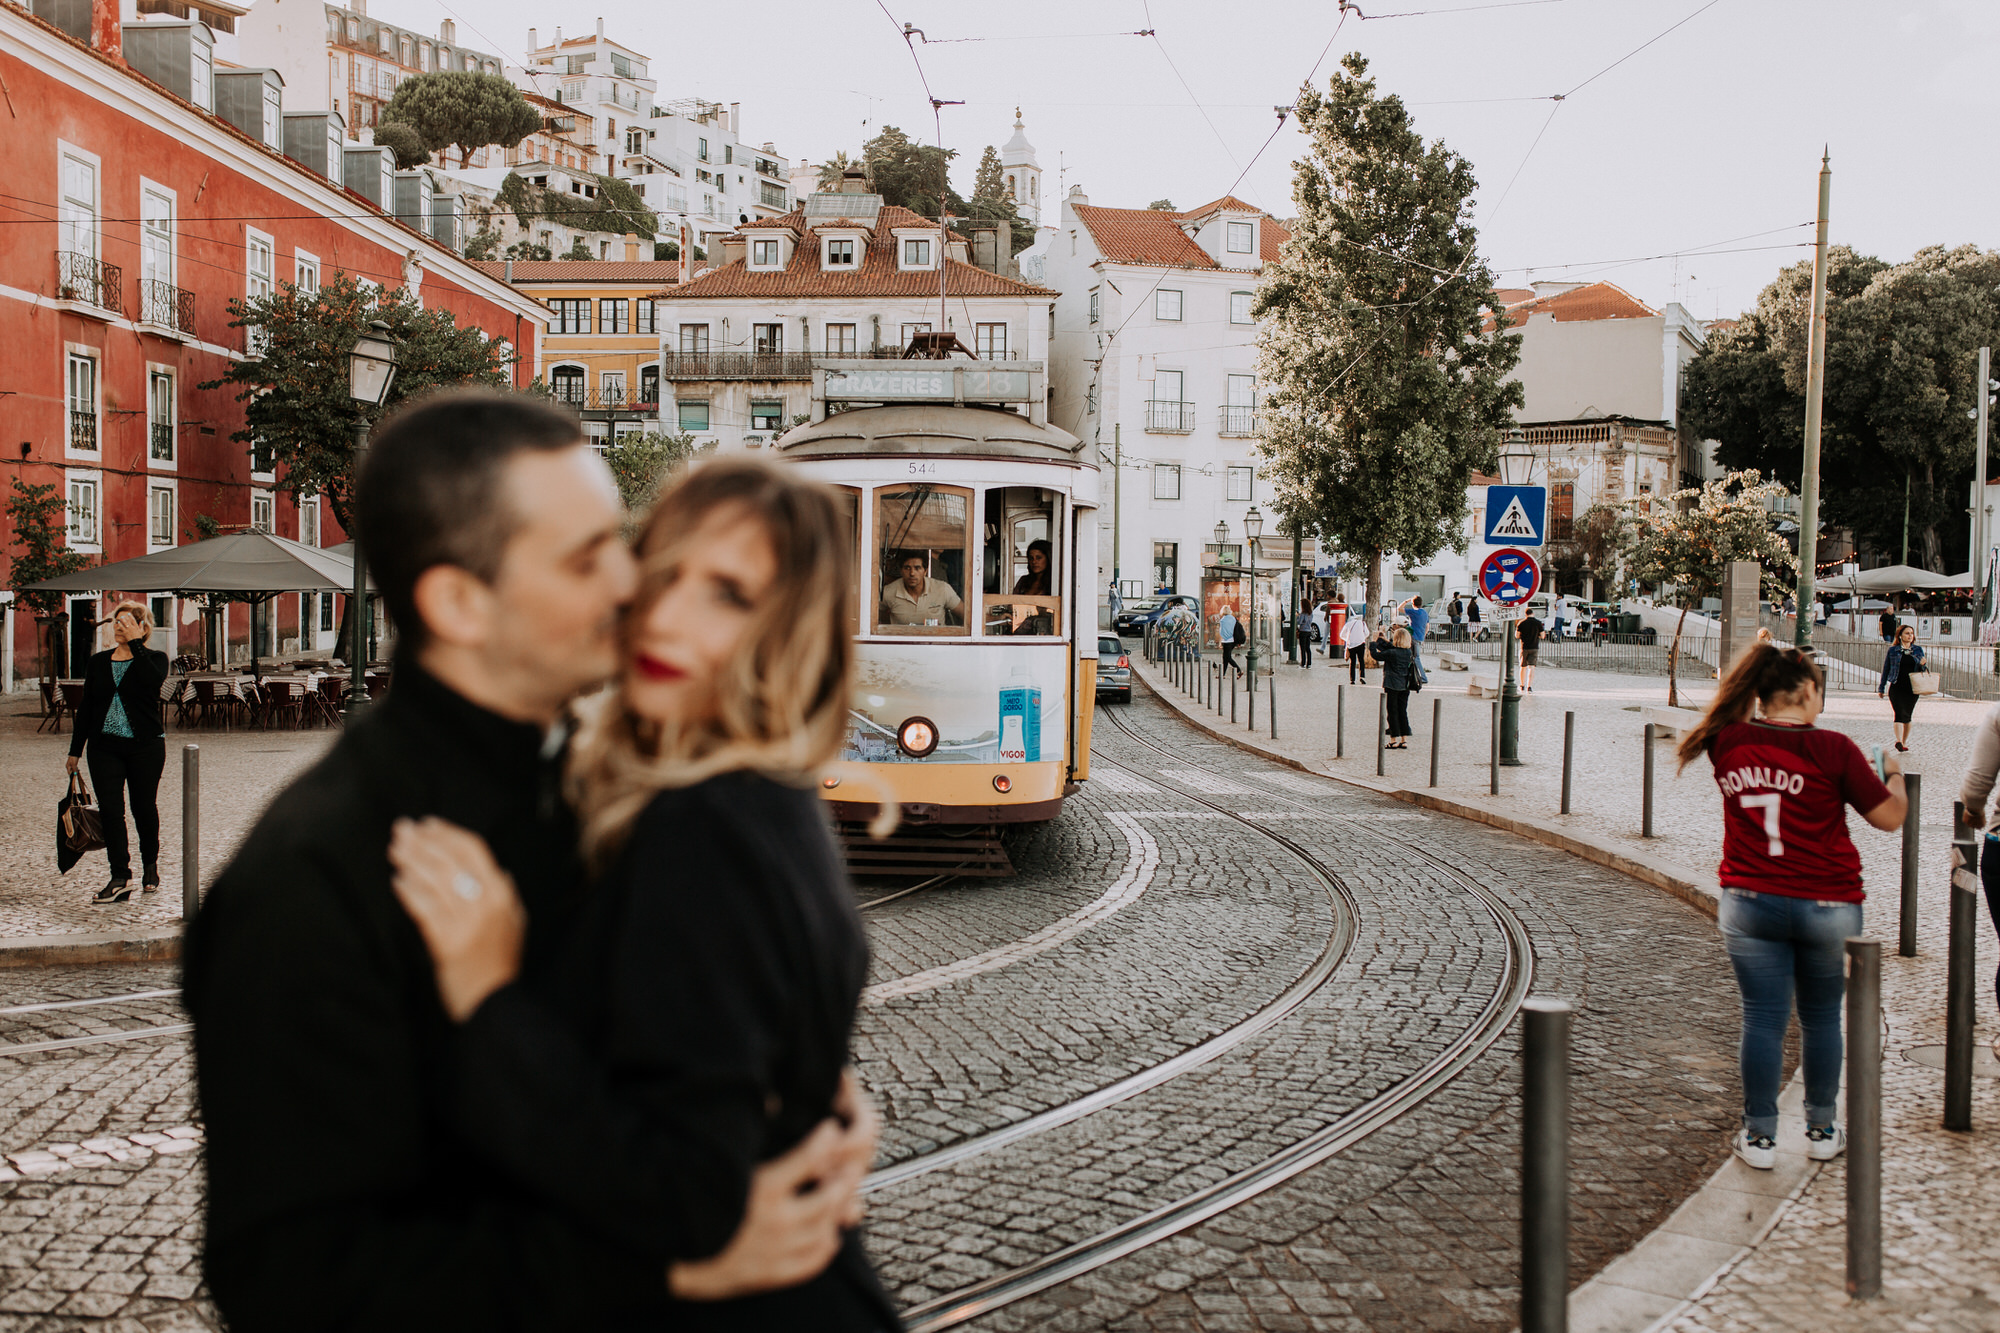 14 -sessao-noivado-engagement-session-alfama-lisboa-town-wedding-photography-photographer-natural-best-venue-planner-destination-filipe-santiago-fotografia